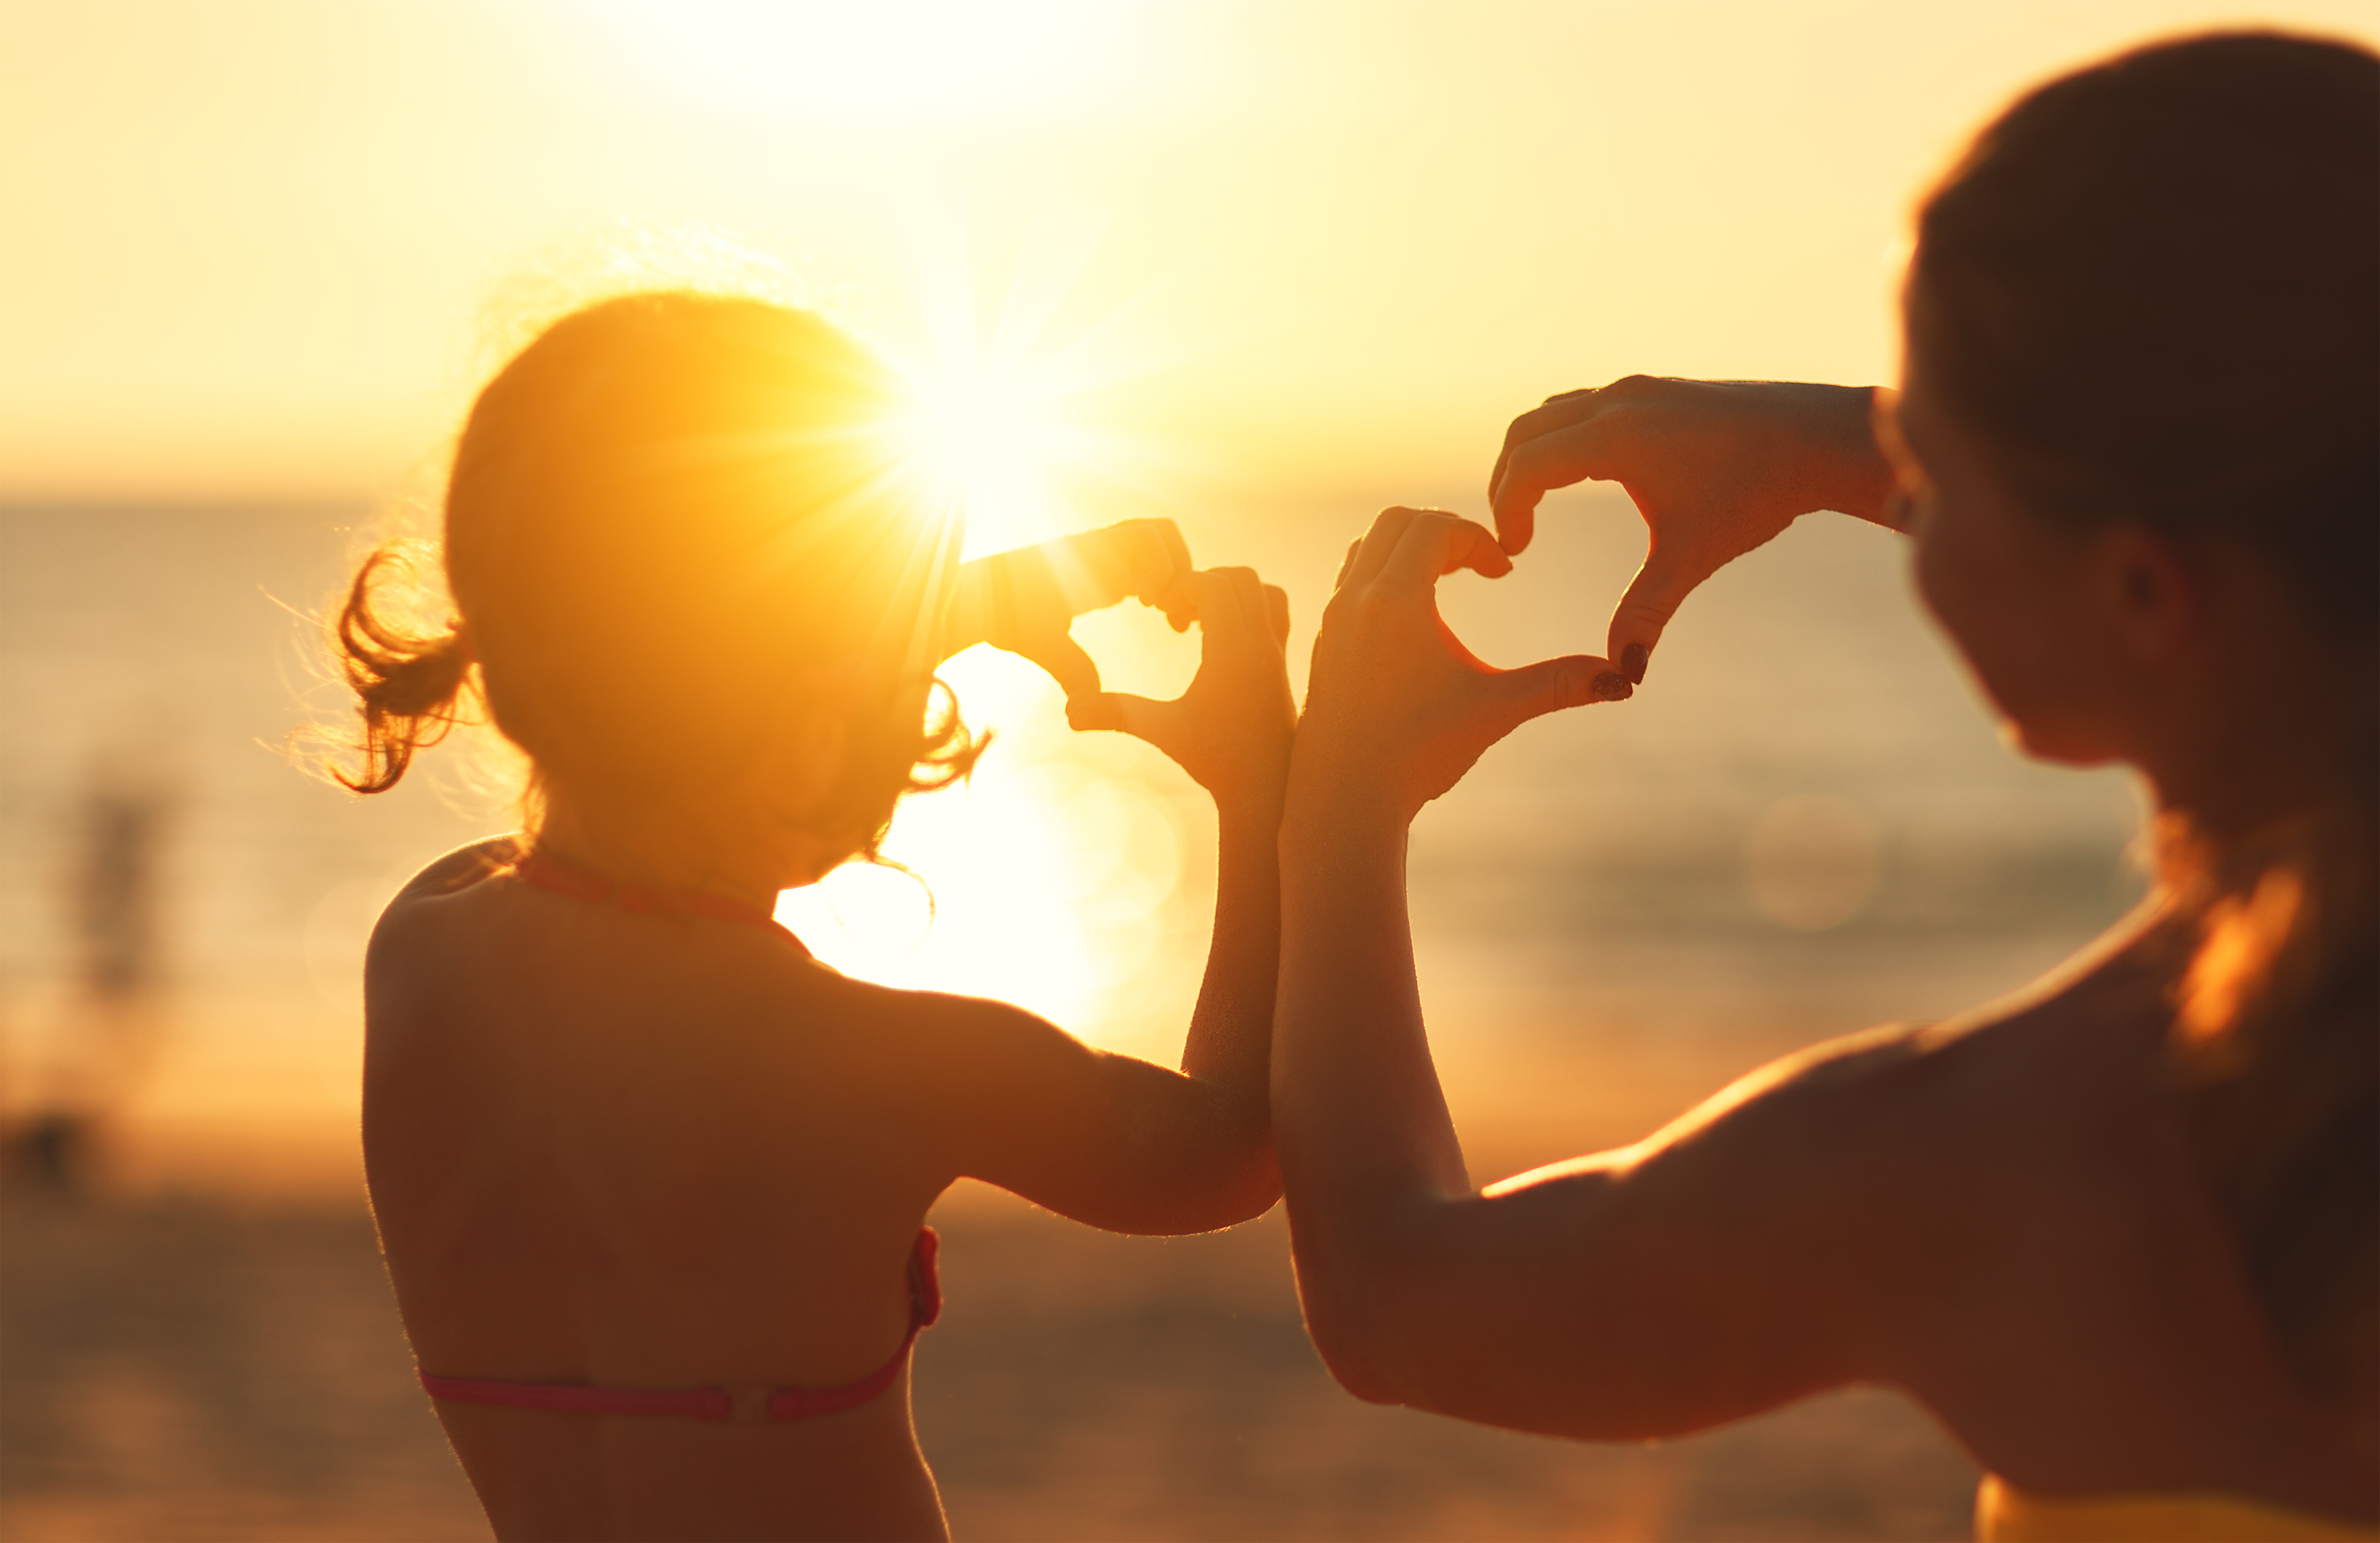 Mother and child daughter show heart from hands at sunset on beach.